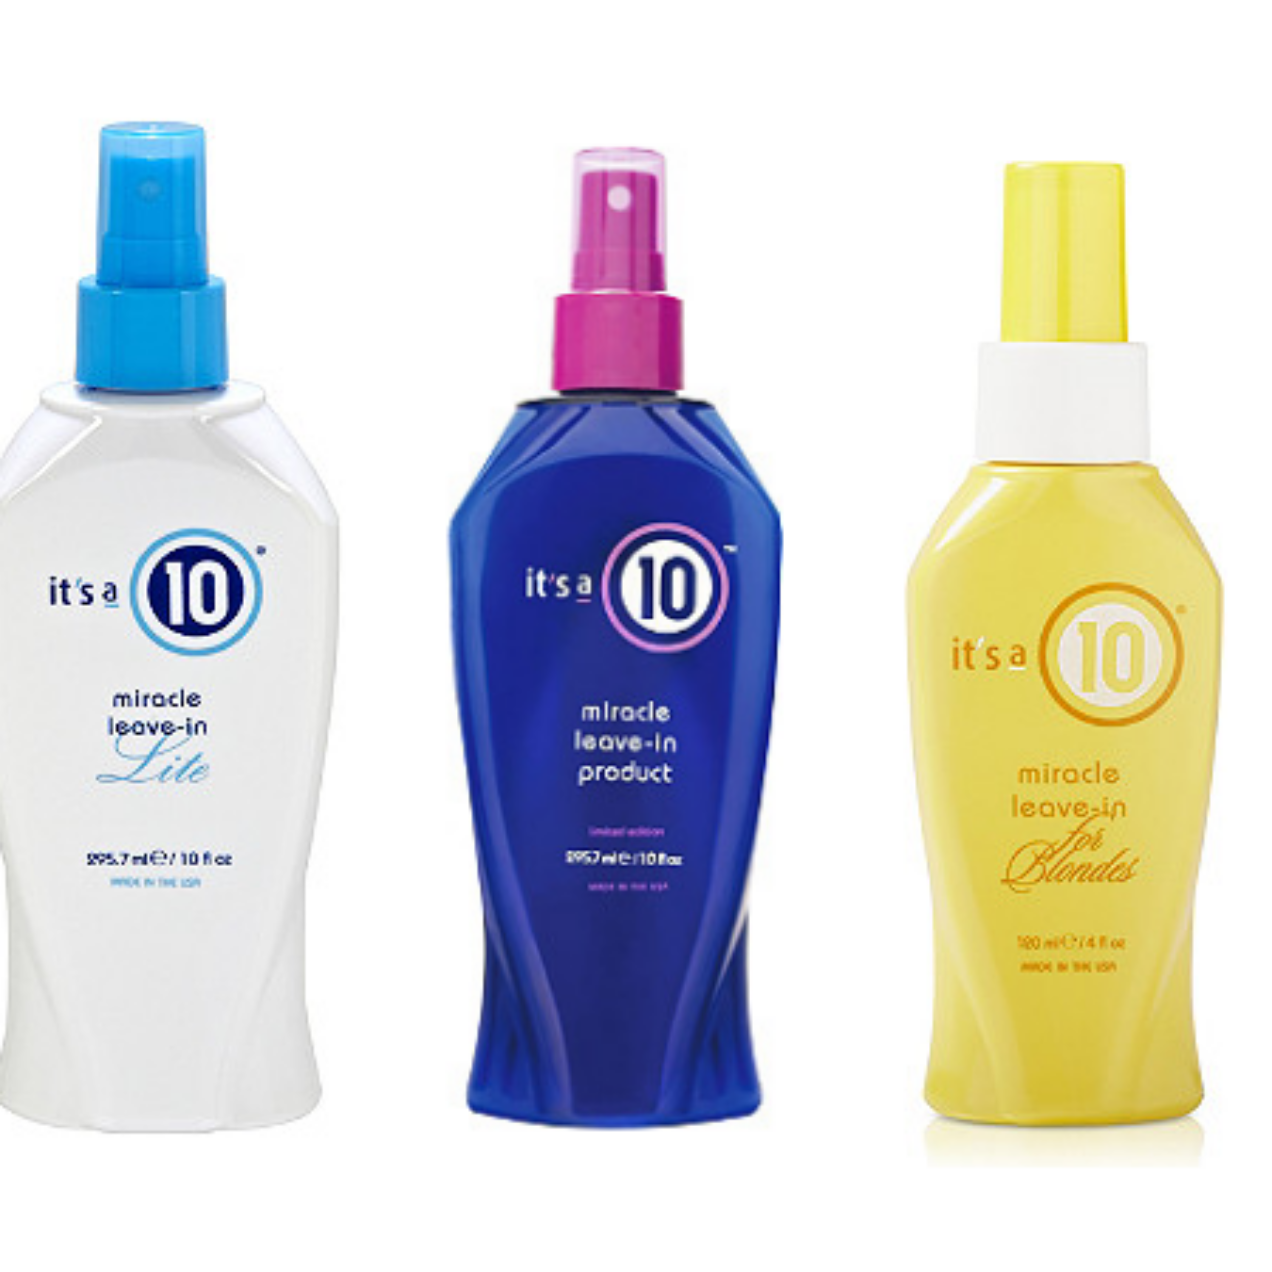 It's a 10 Haircare Miracle Leave In Products 50% Off!